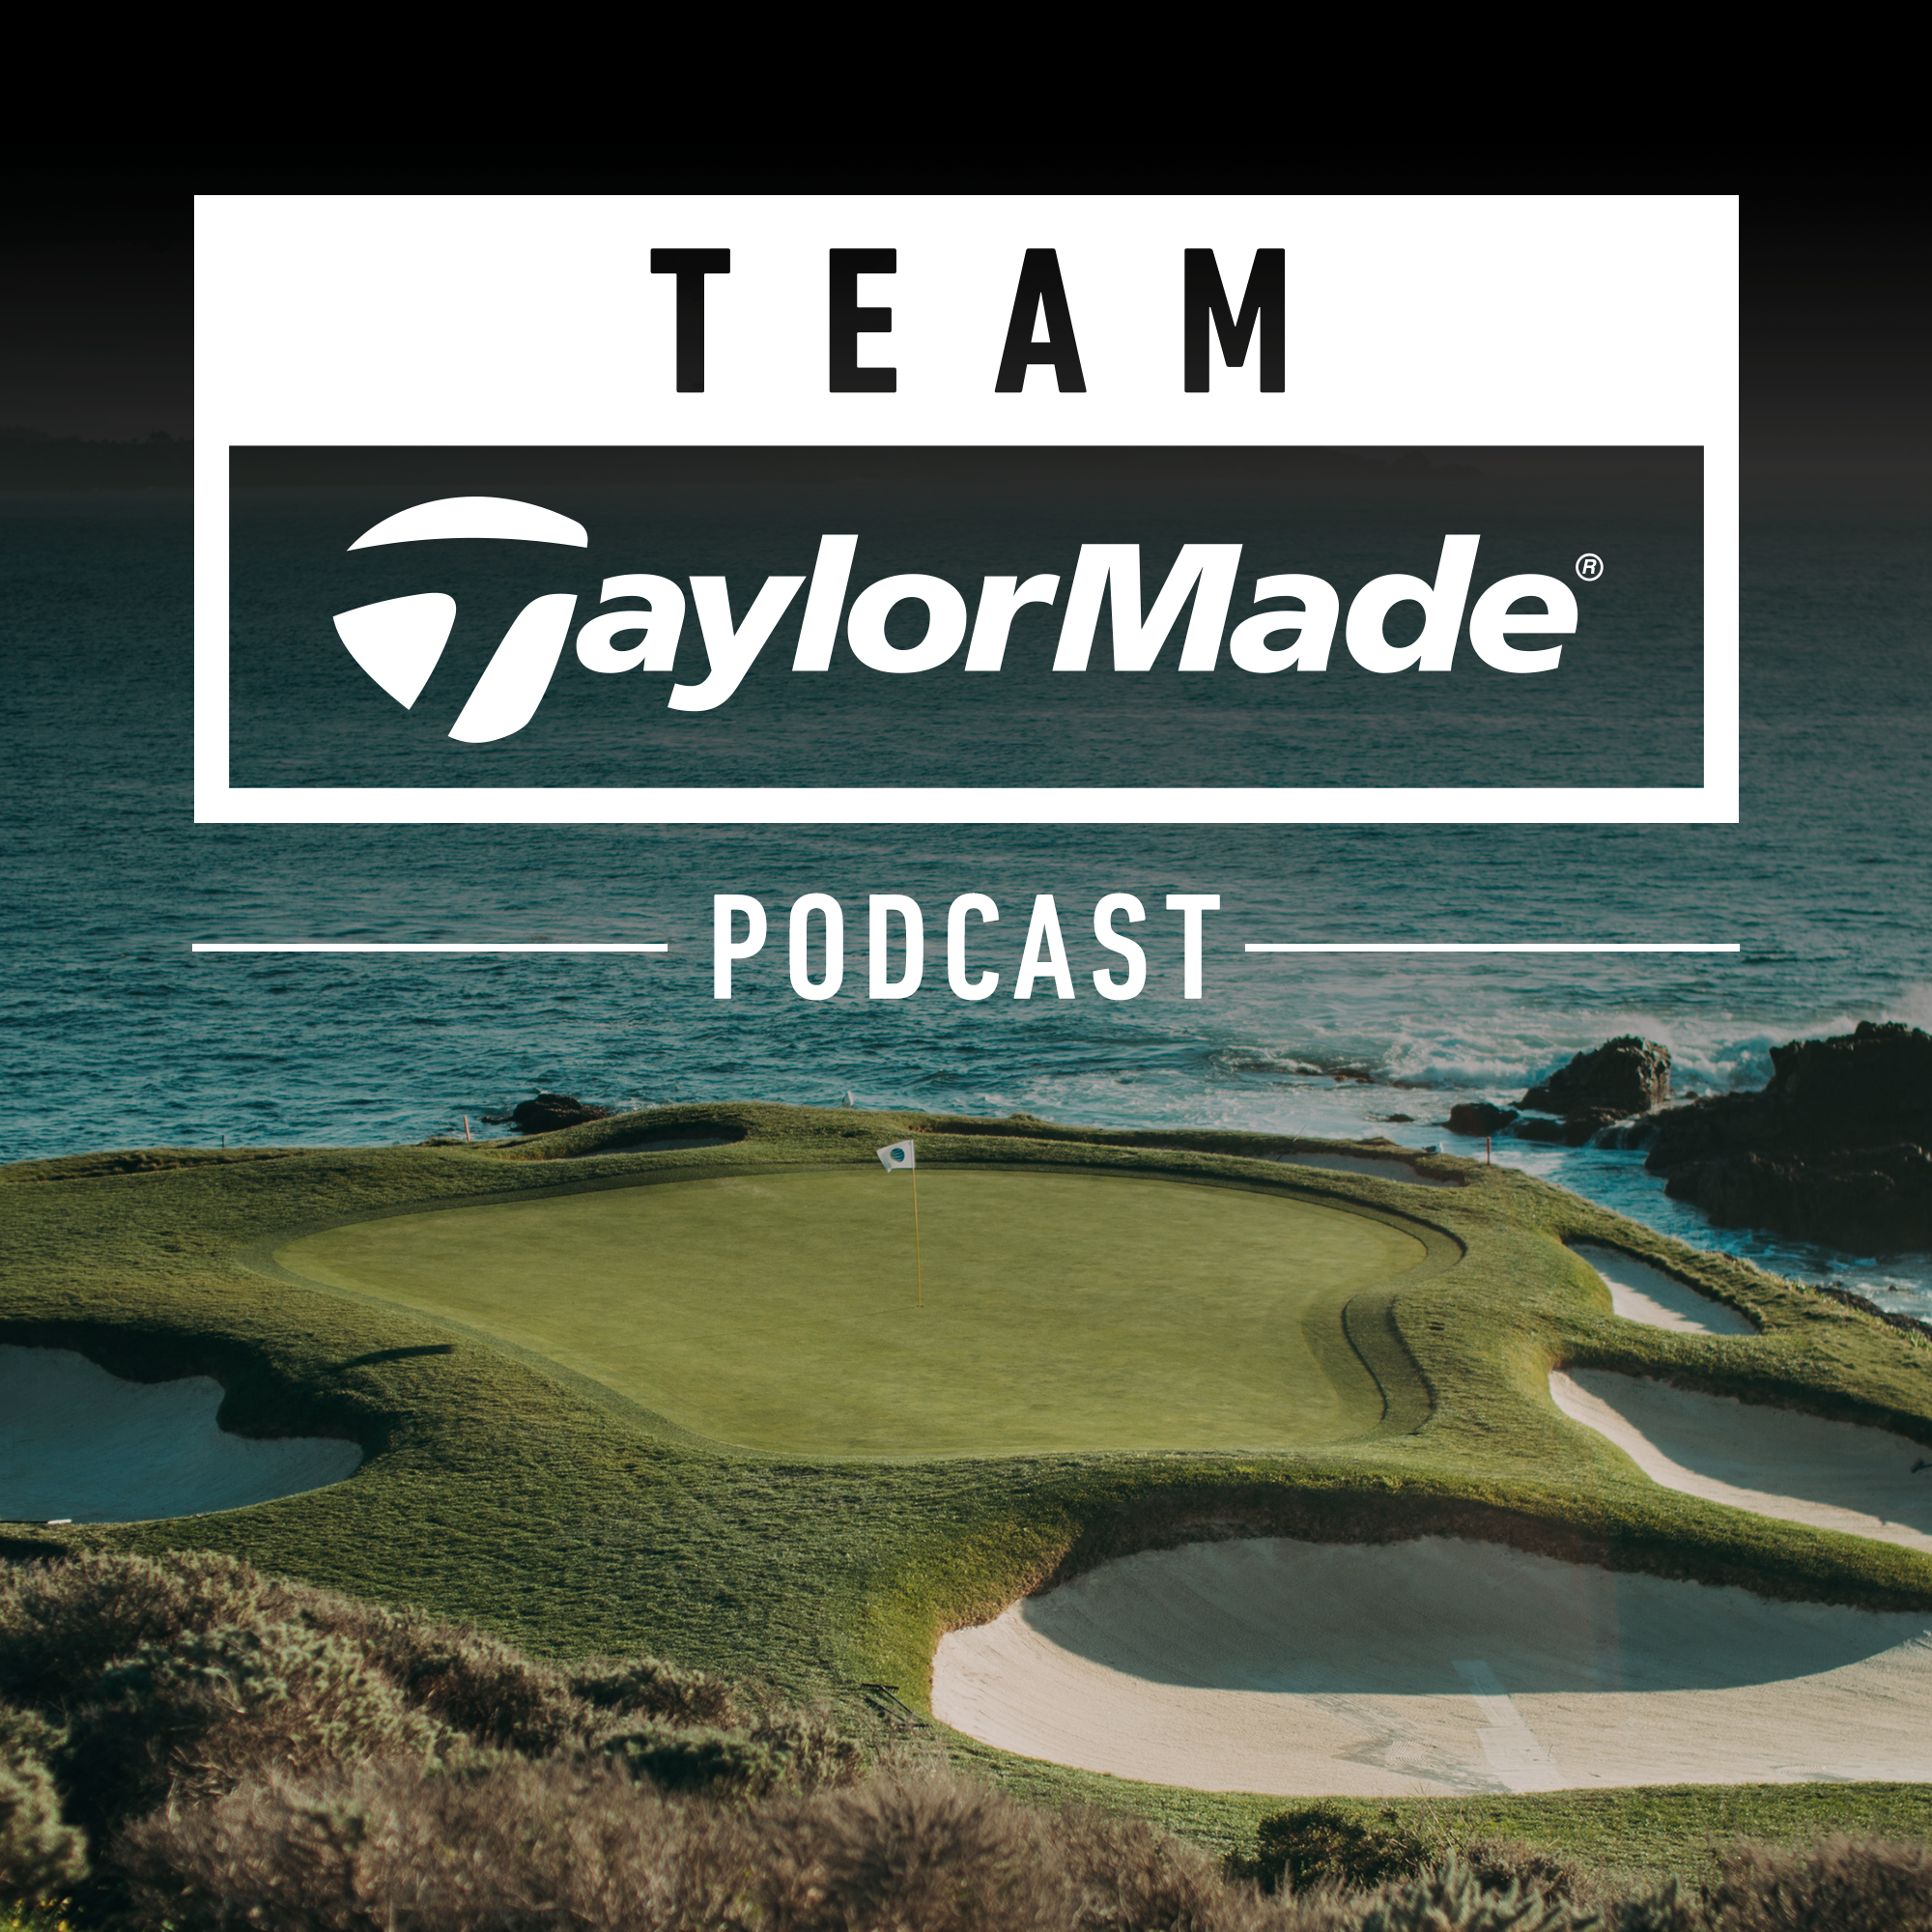 Team TaylorMade Podcast show art